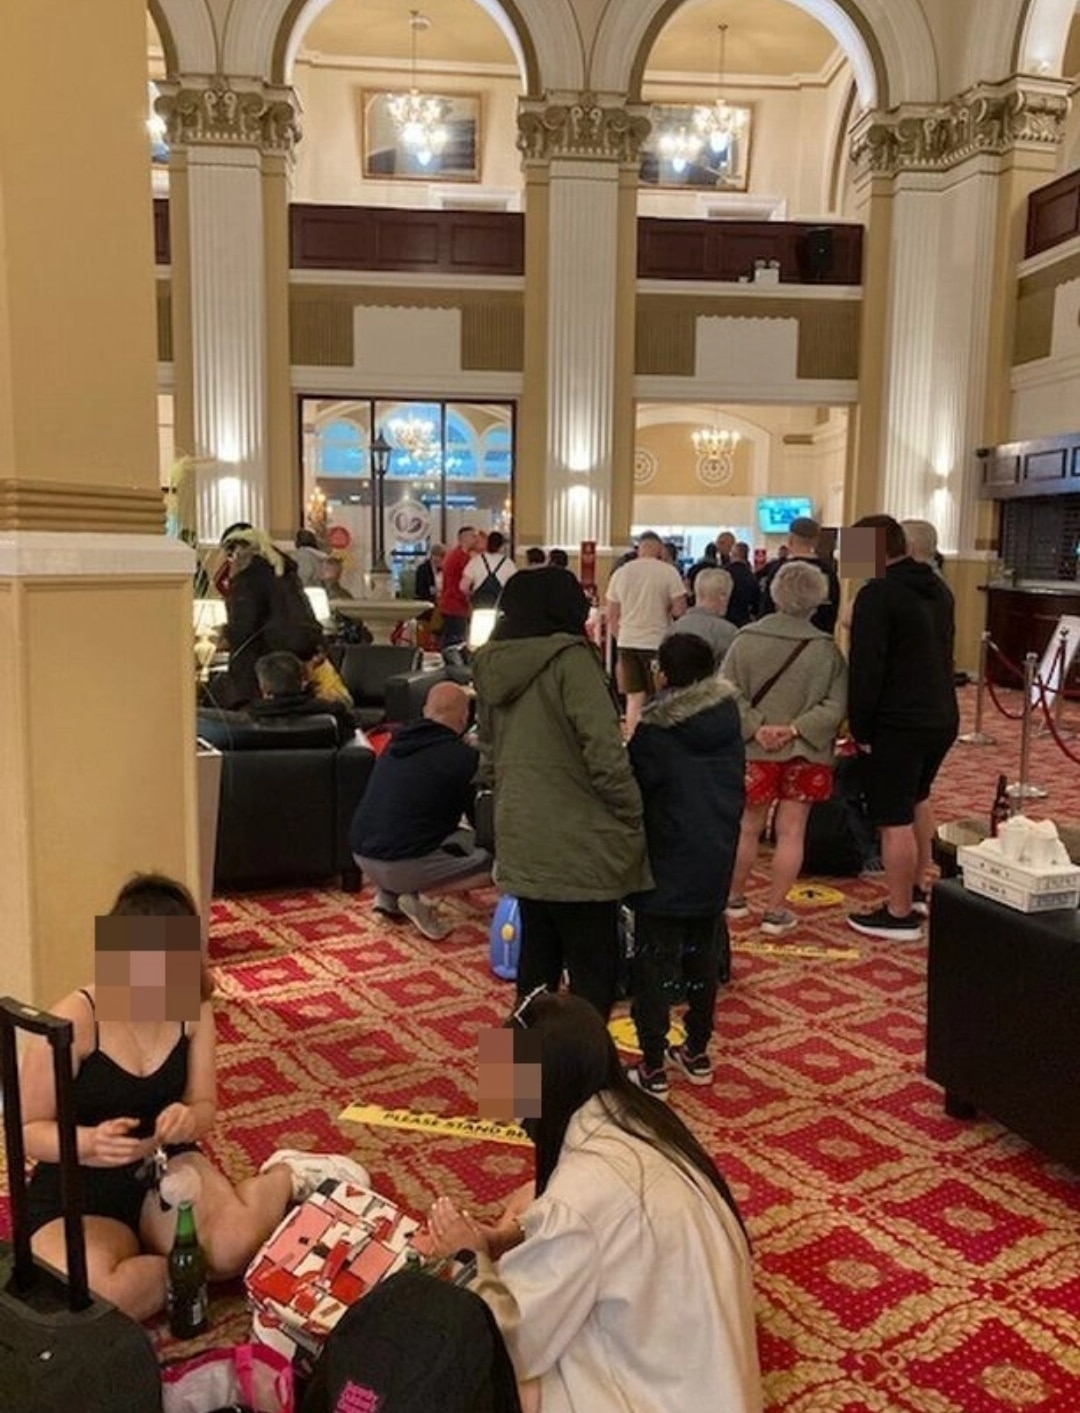 UK: man spent 12 hours queuing to check-in at Grand Hotel 4